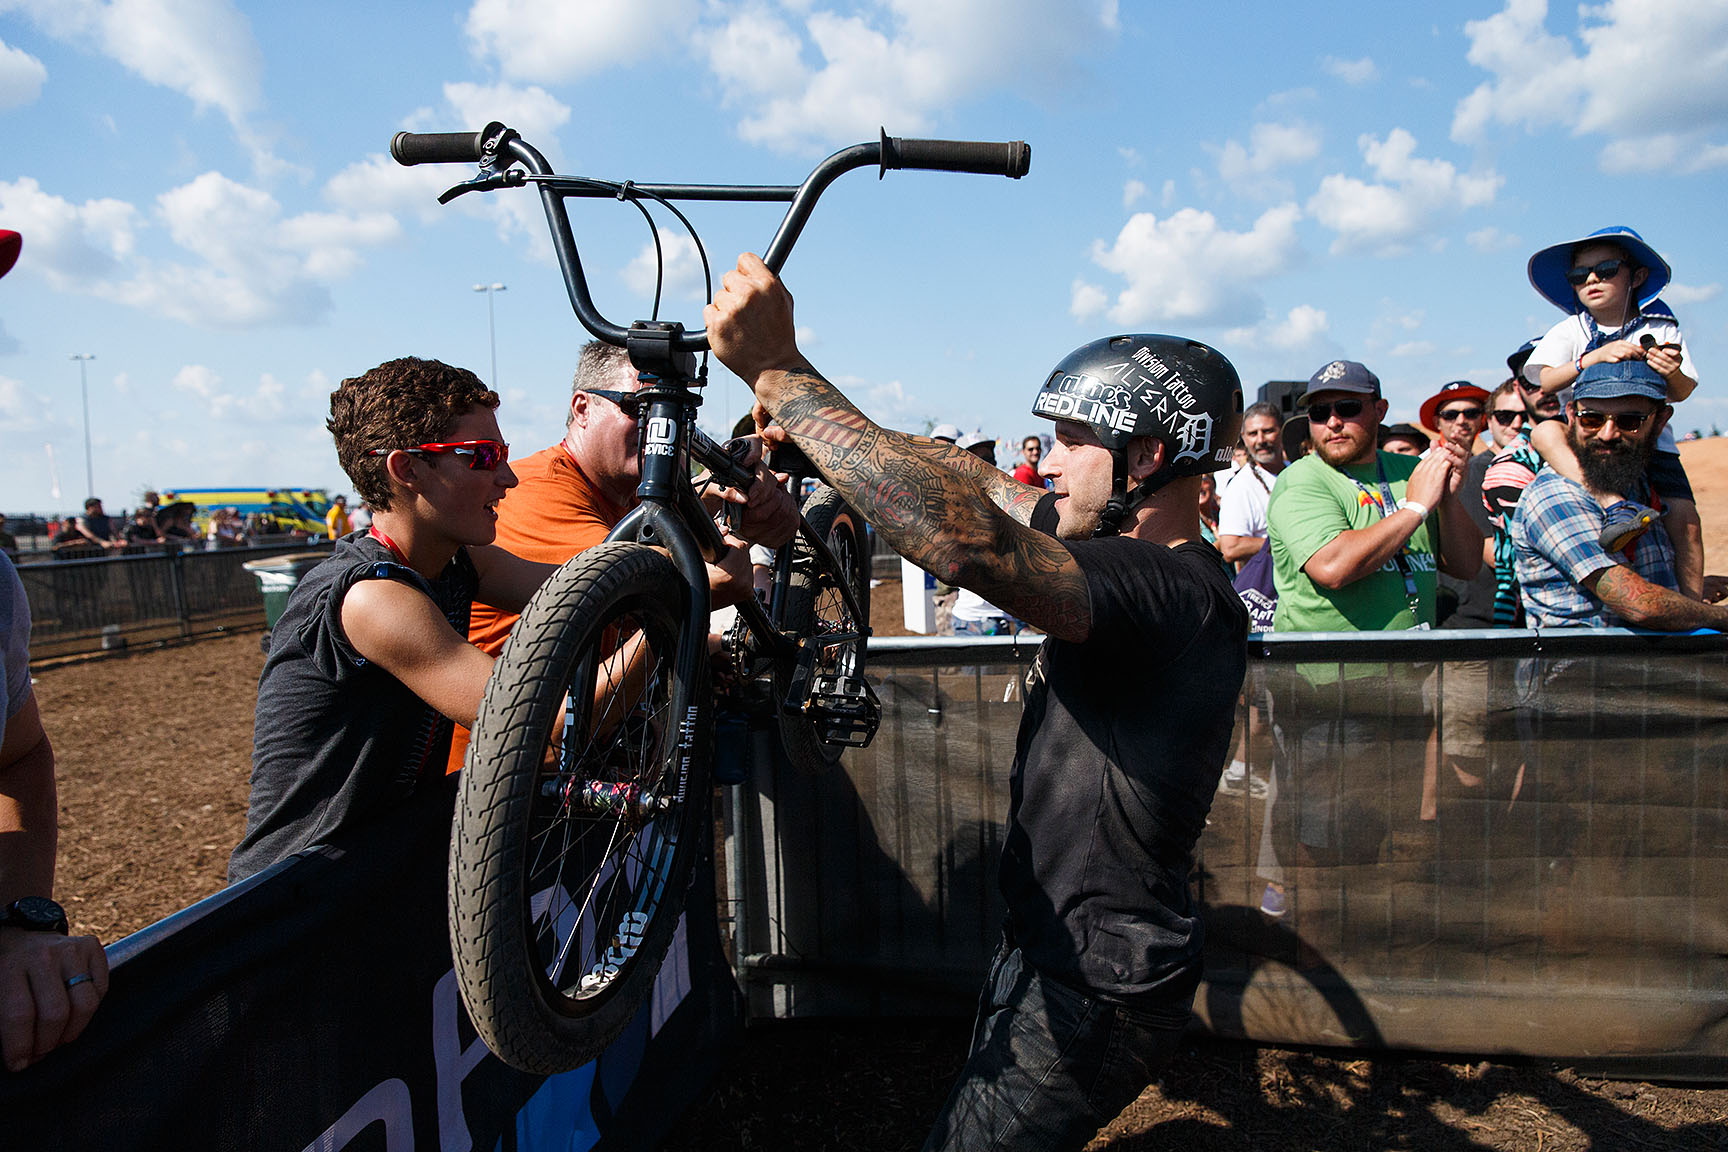 Redline Bicycles pro Brandon Dosch had a rough go in BMX Dirt and failed to break the top five in the finals. Dosch, an Austin, Texas, native who digs trails in the area, gave his bike to a spectator at the end of the competition. Then he drove back to Austin to build a new bike.